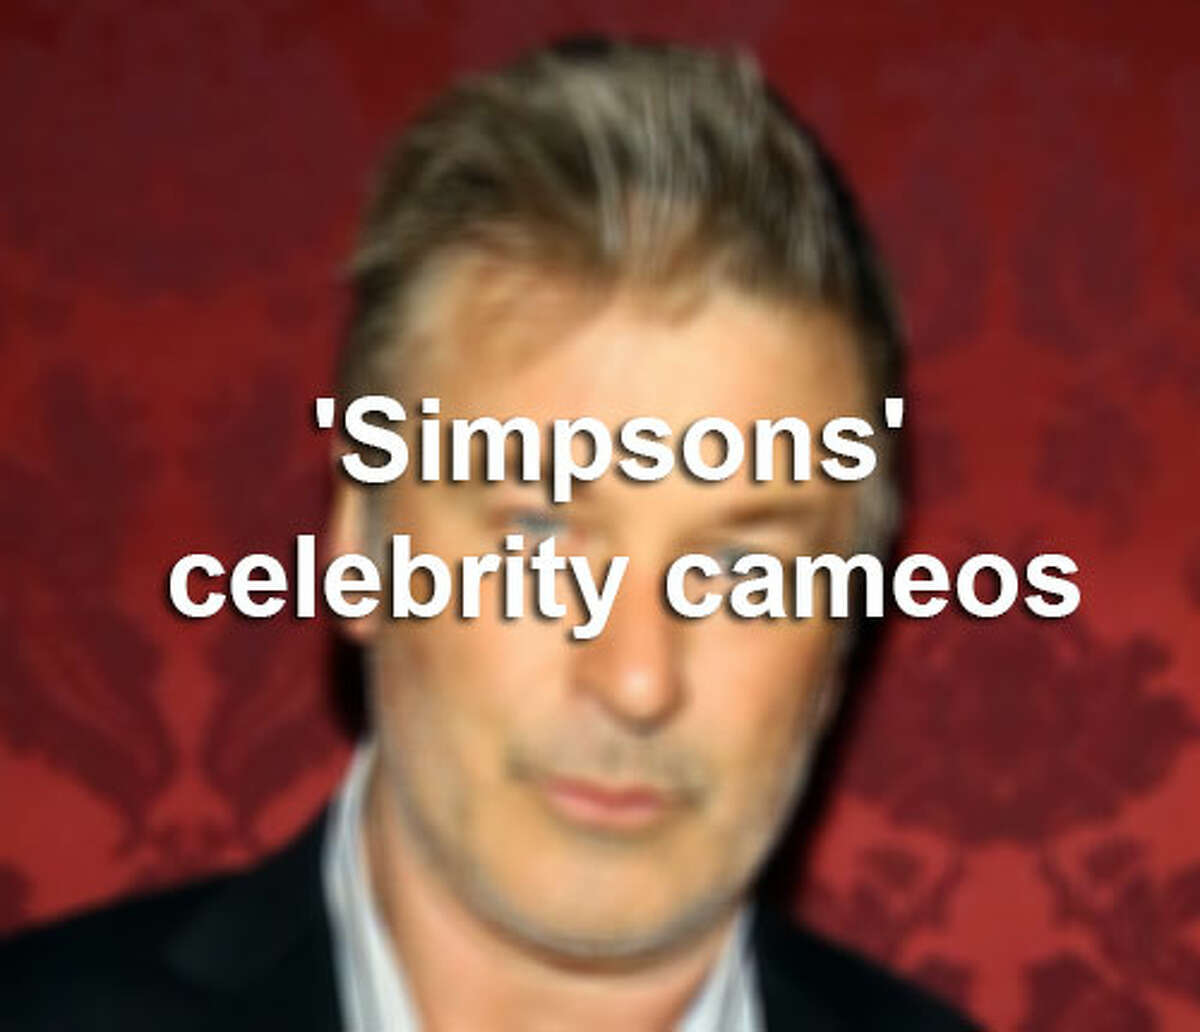 Take a look back at some of the best celebrity cameos on the